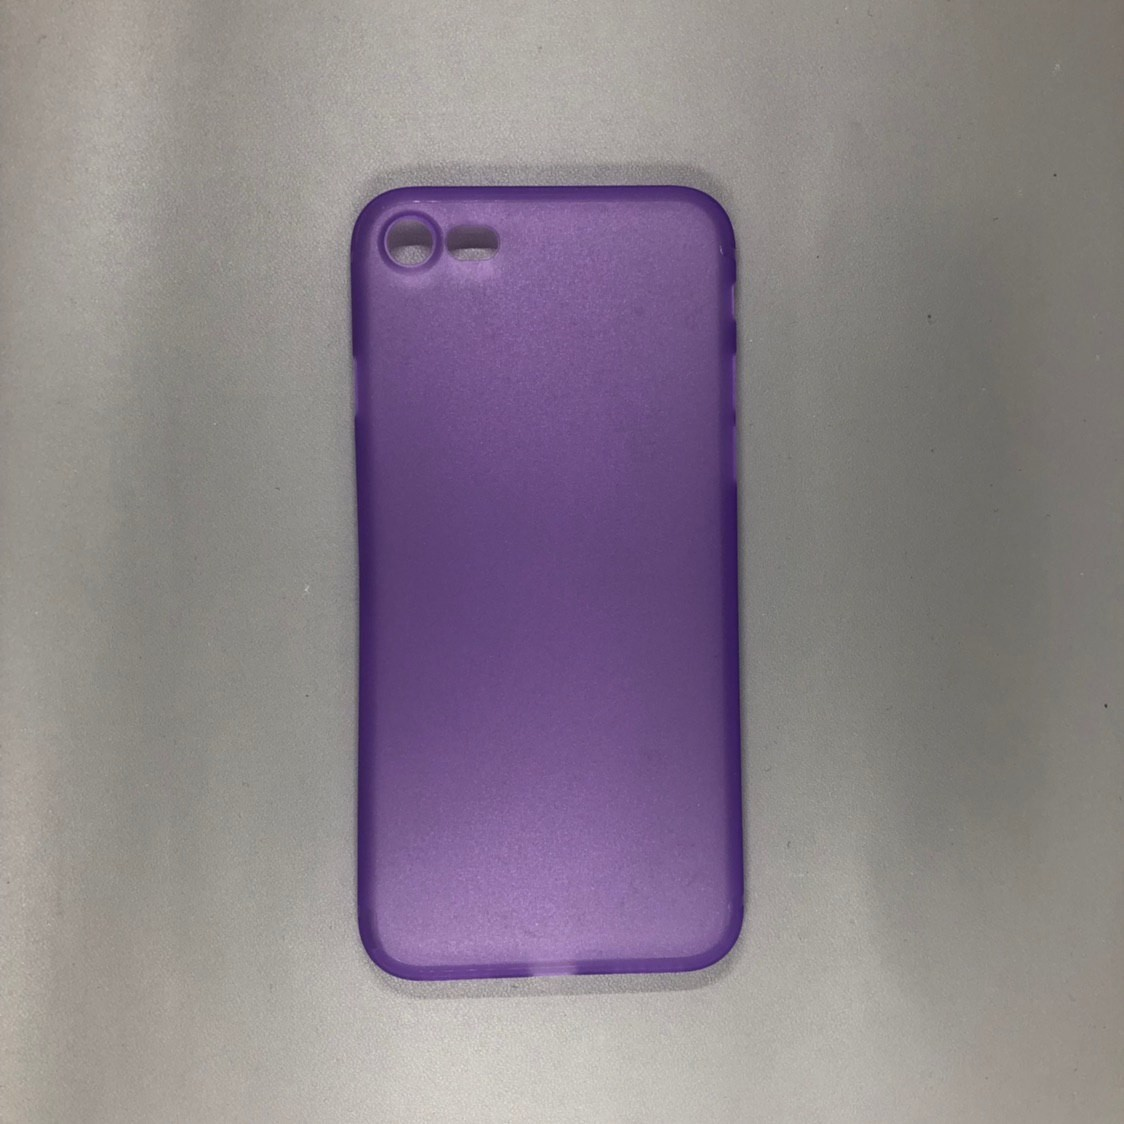 iPhone 7 Plastic UltraViolet